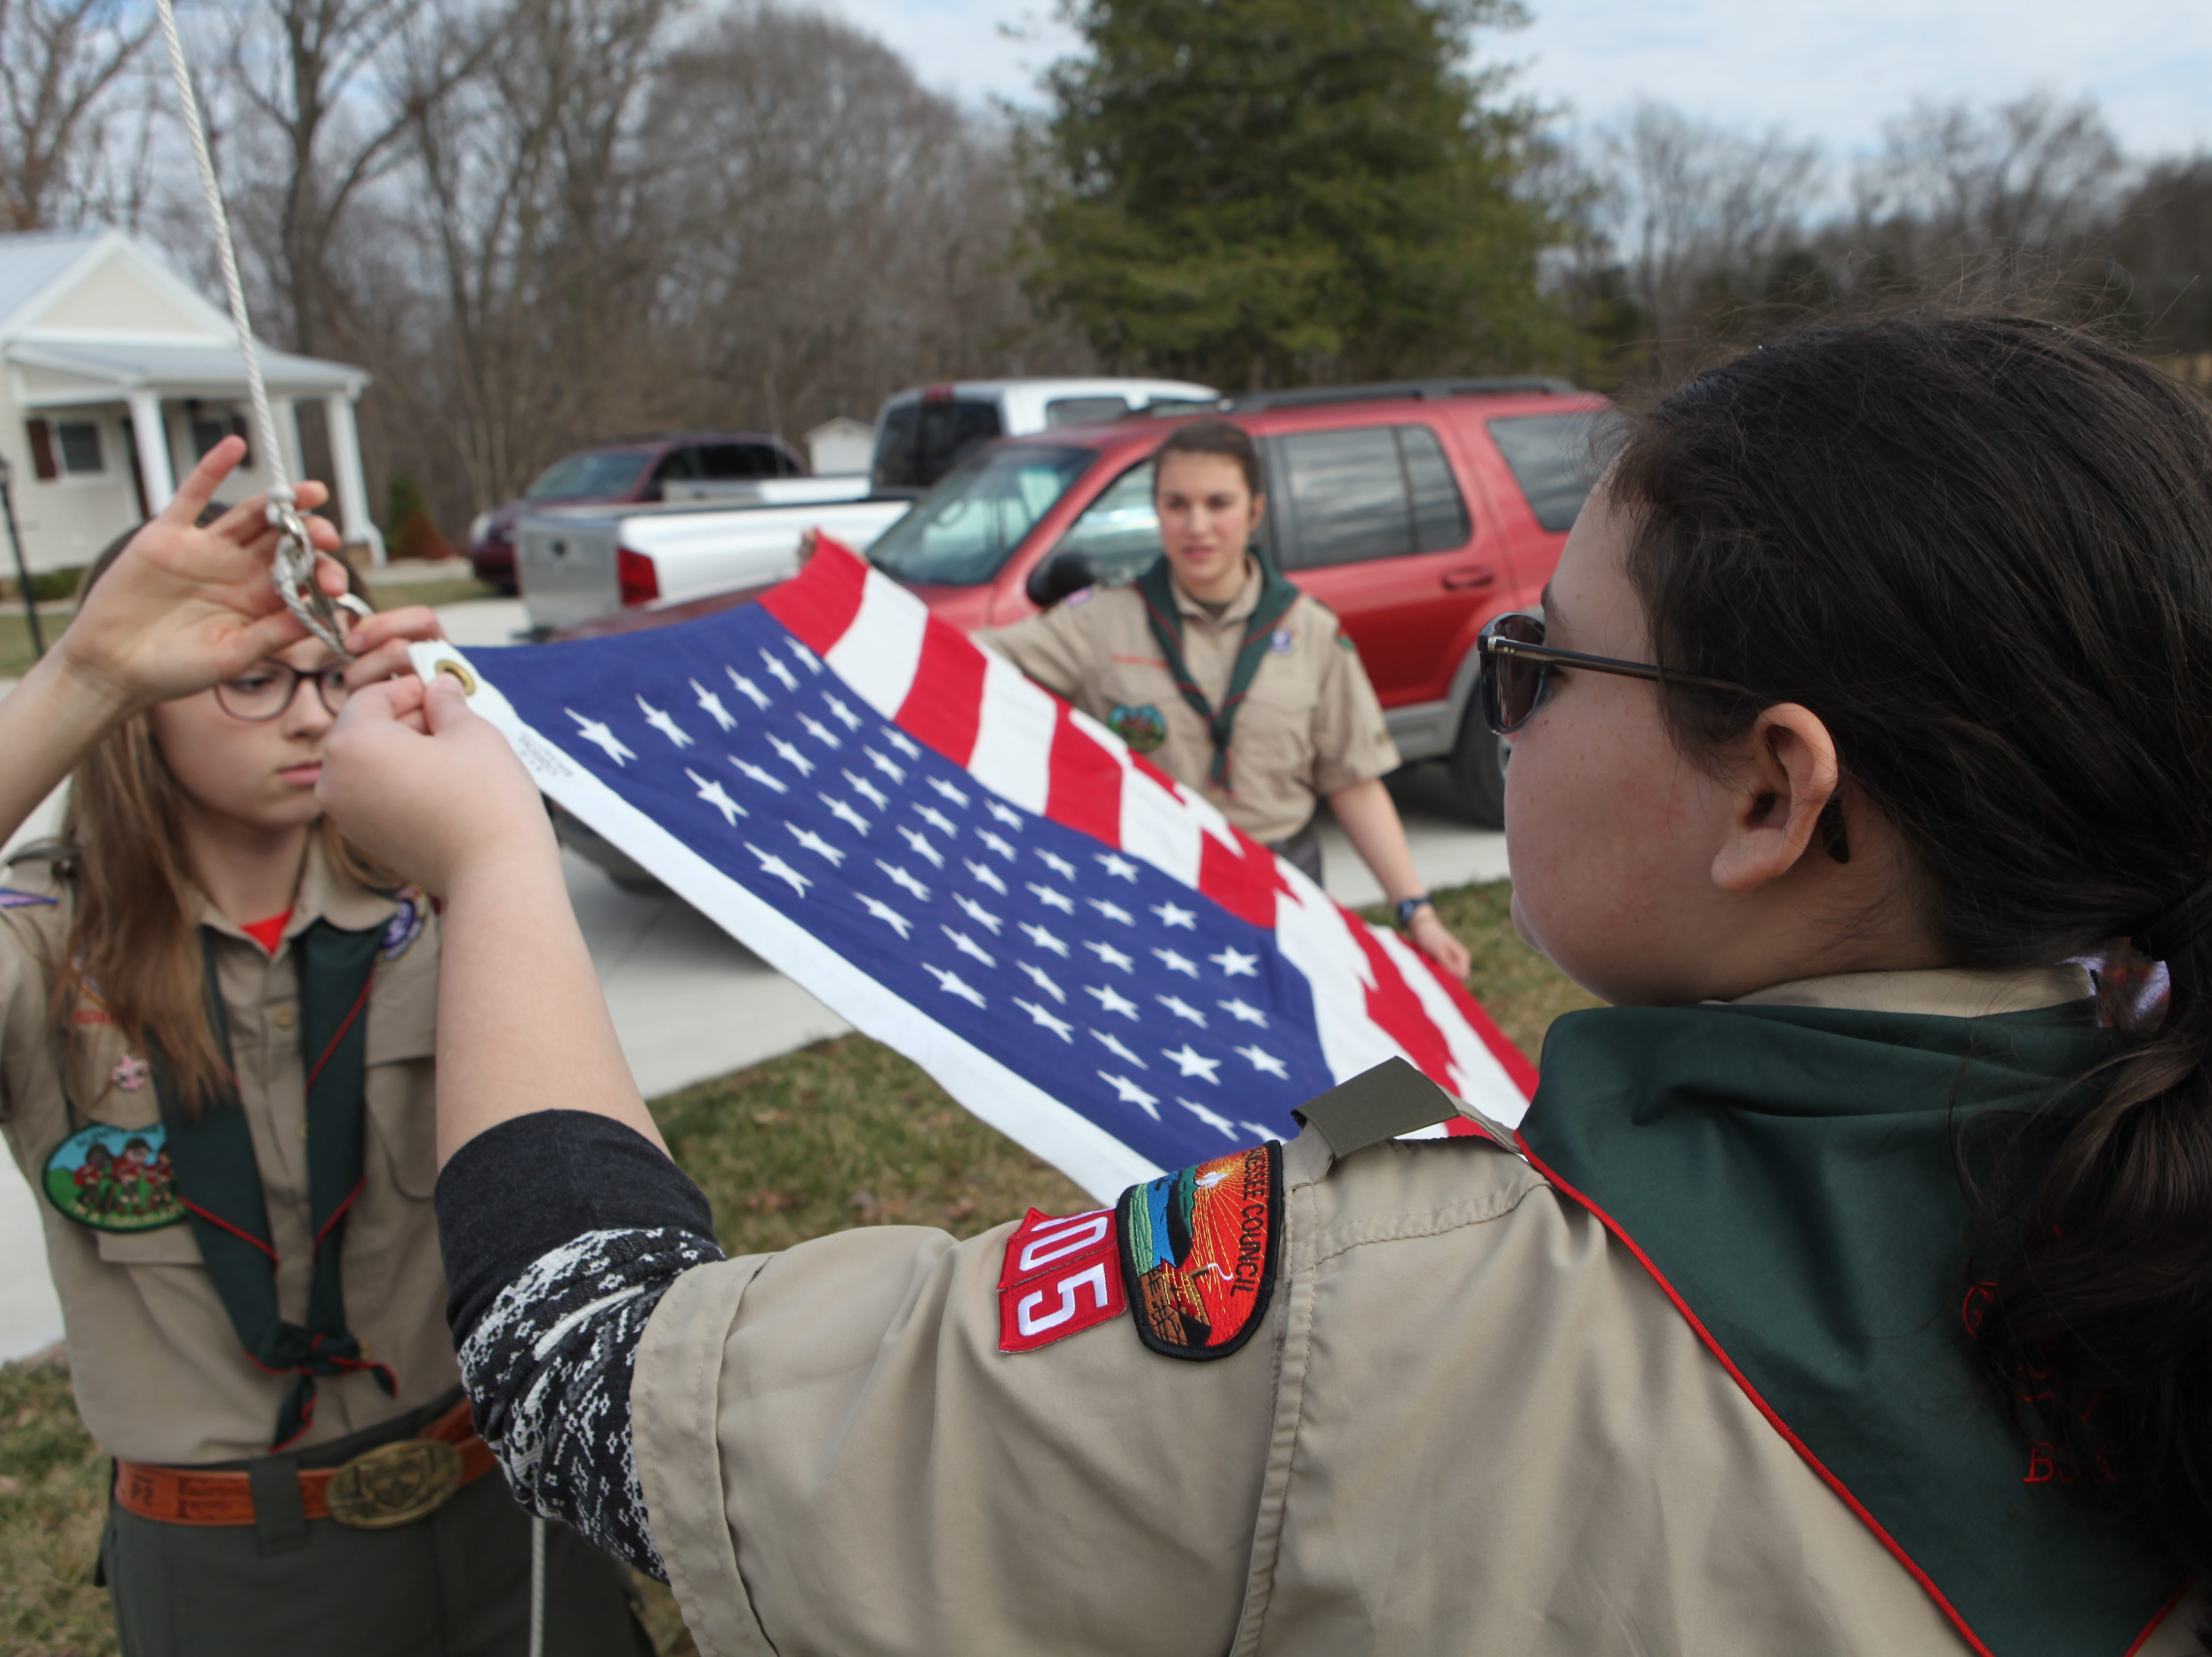 Clarksville, Tennessee's first all-female Scouts BSA Troop #21 held its inaugural lock-in event on the first weekend of February, 2019.